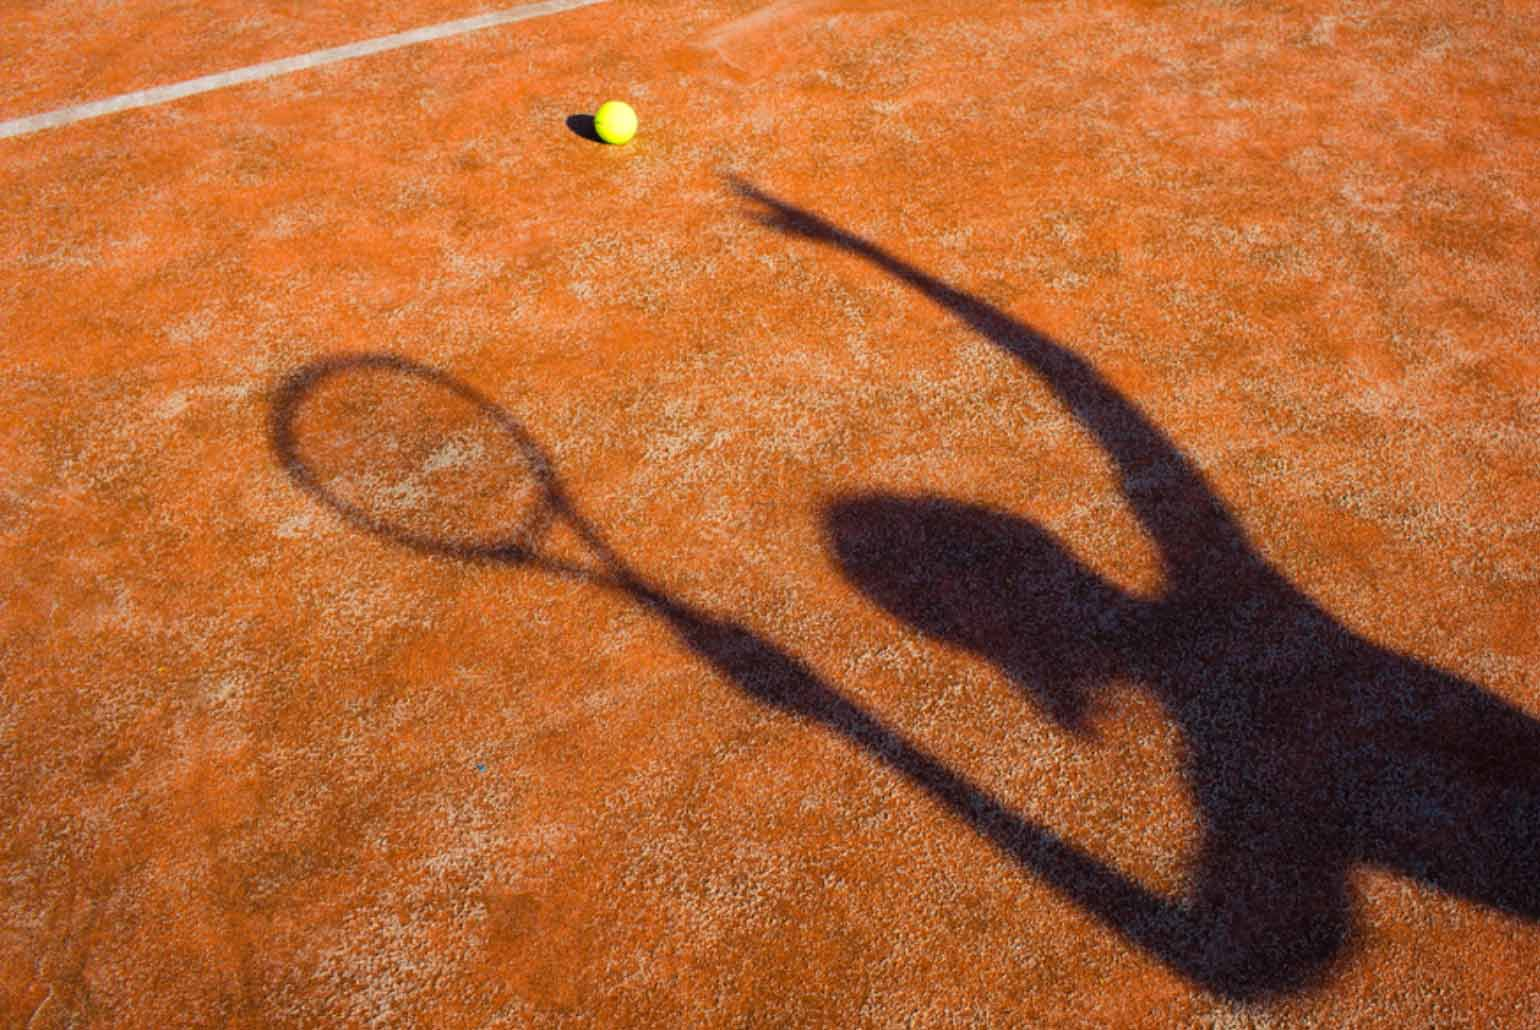 Expert Tips on Playing Tennis in Hot Summer